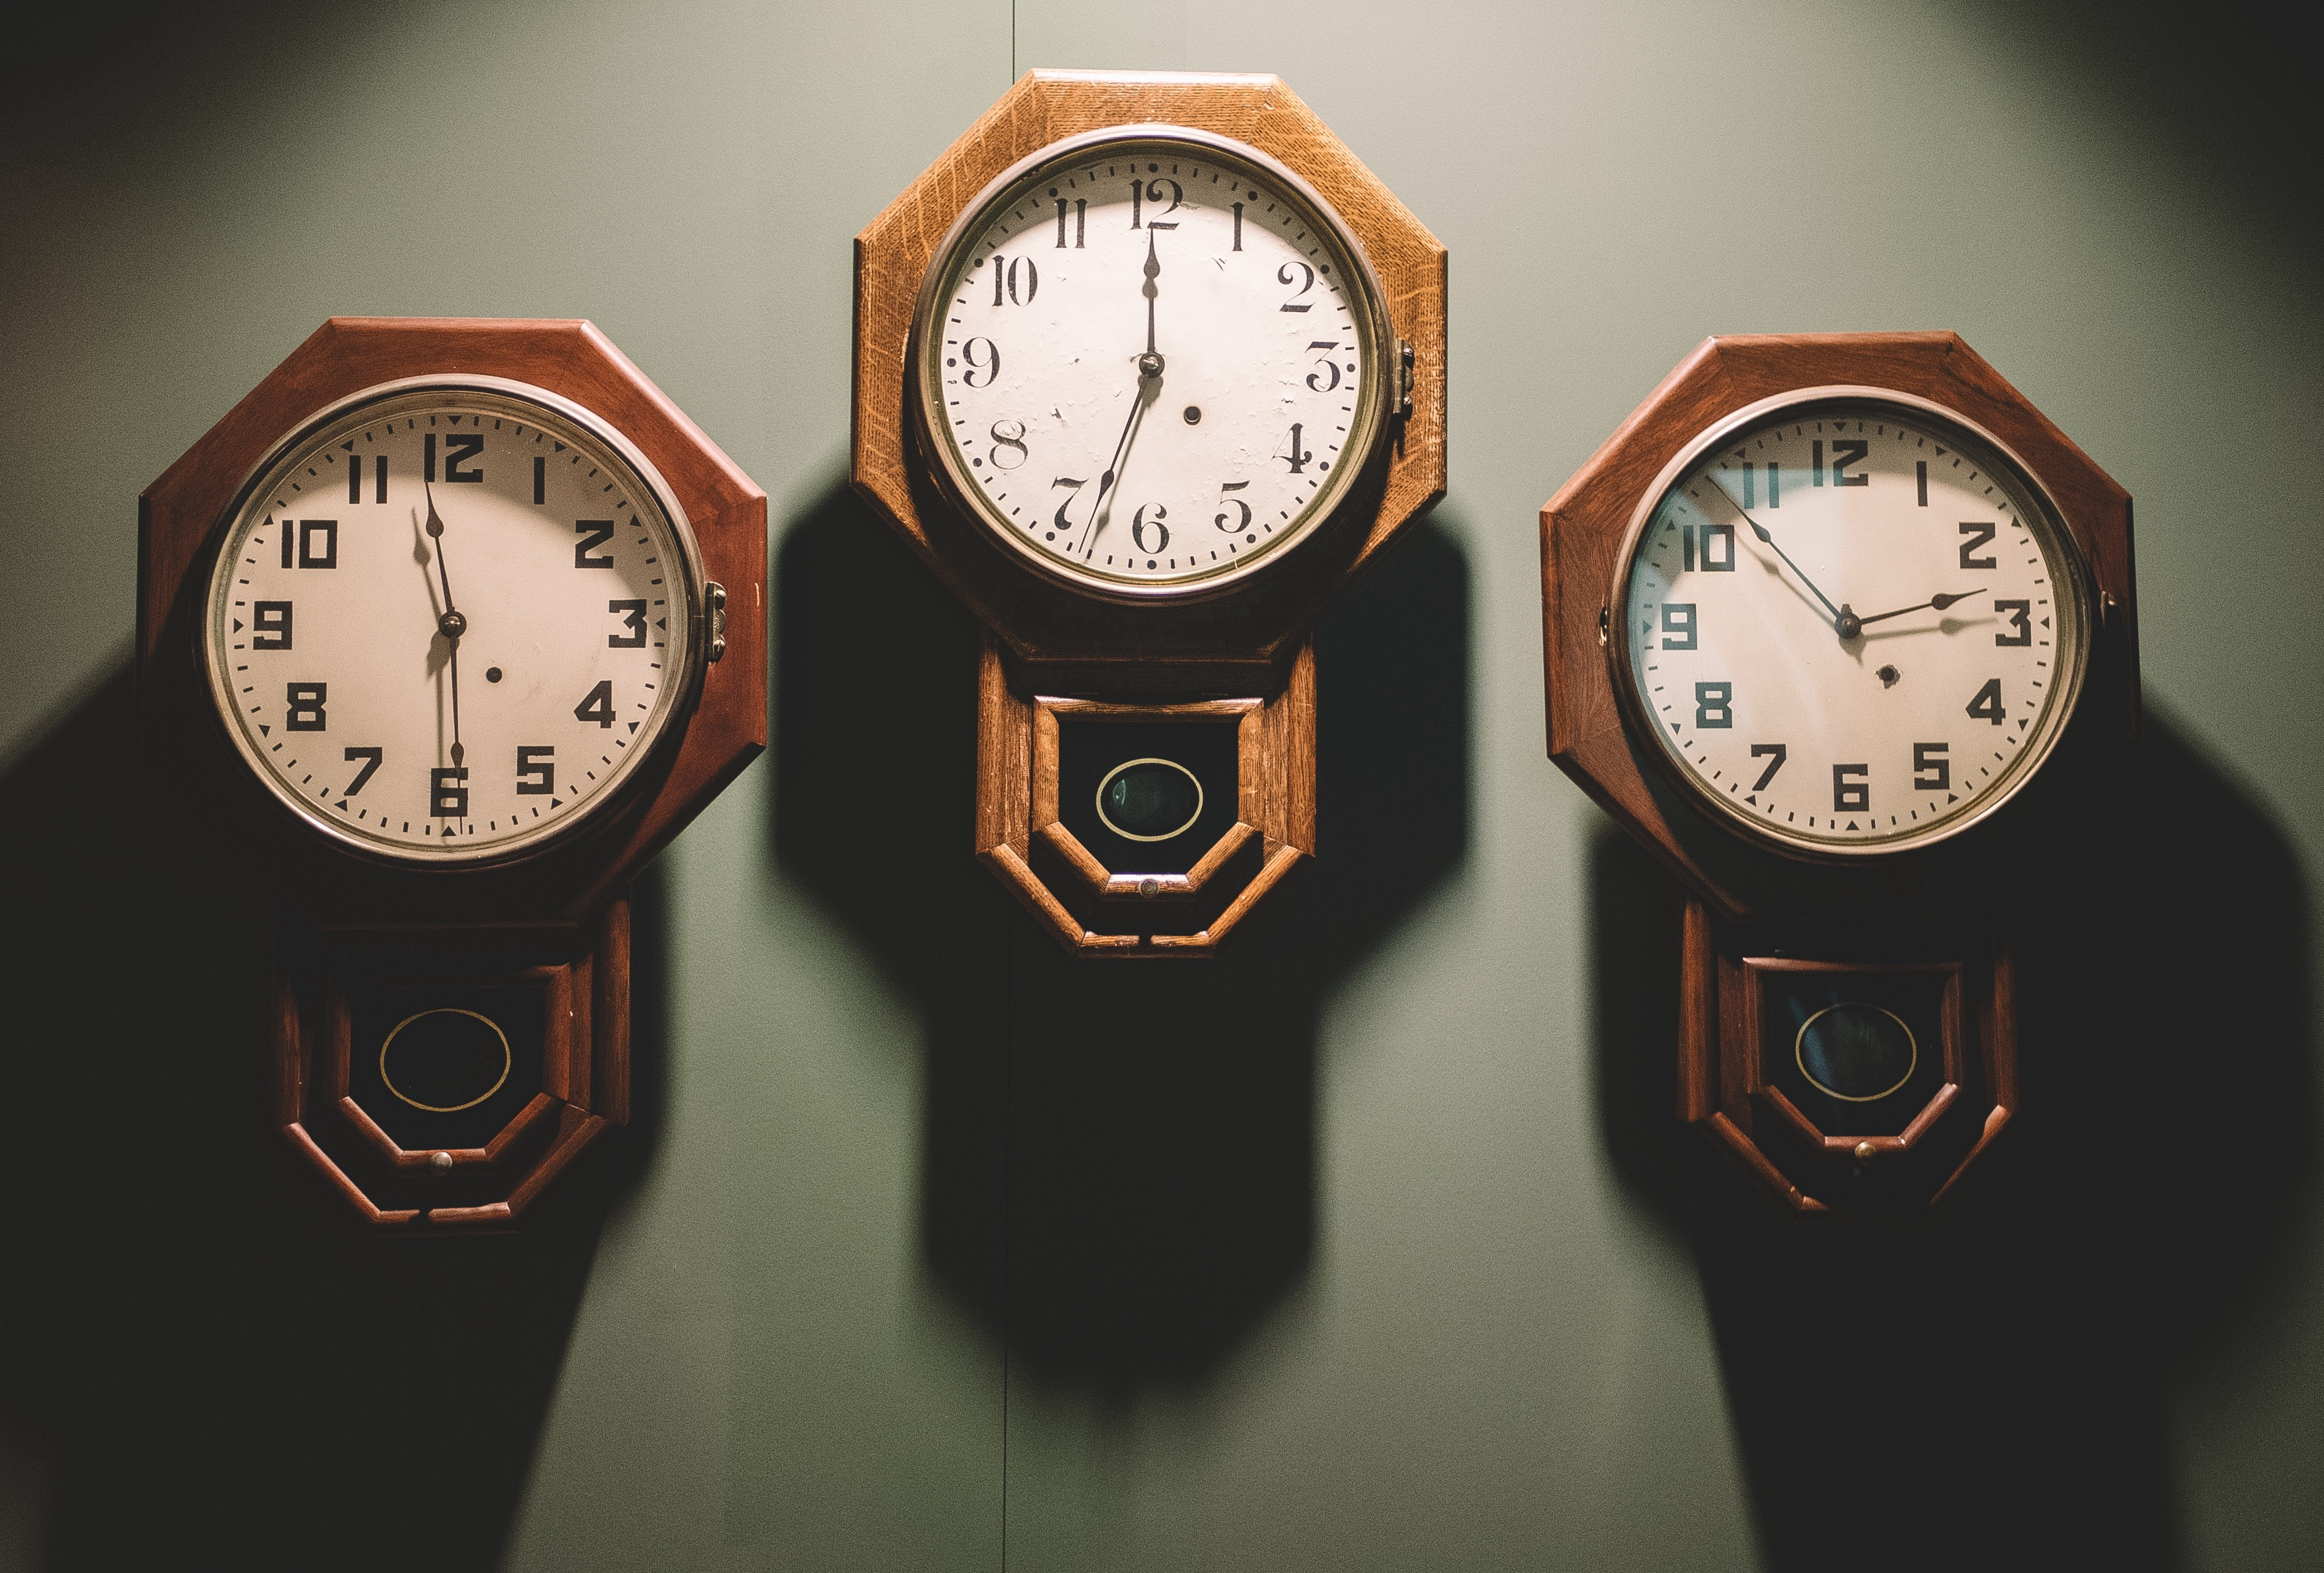 Three clocks showing different times.